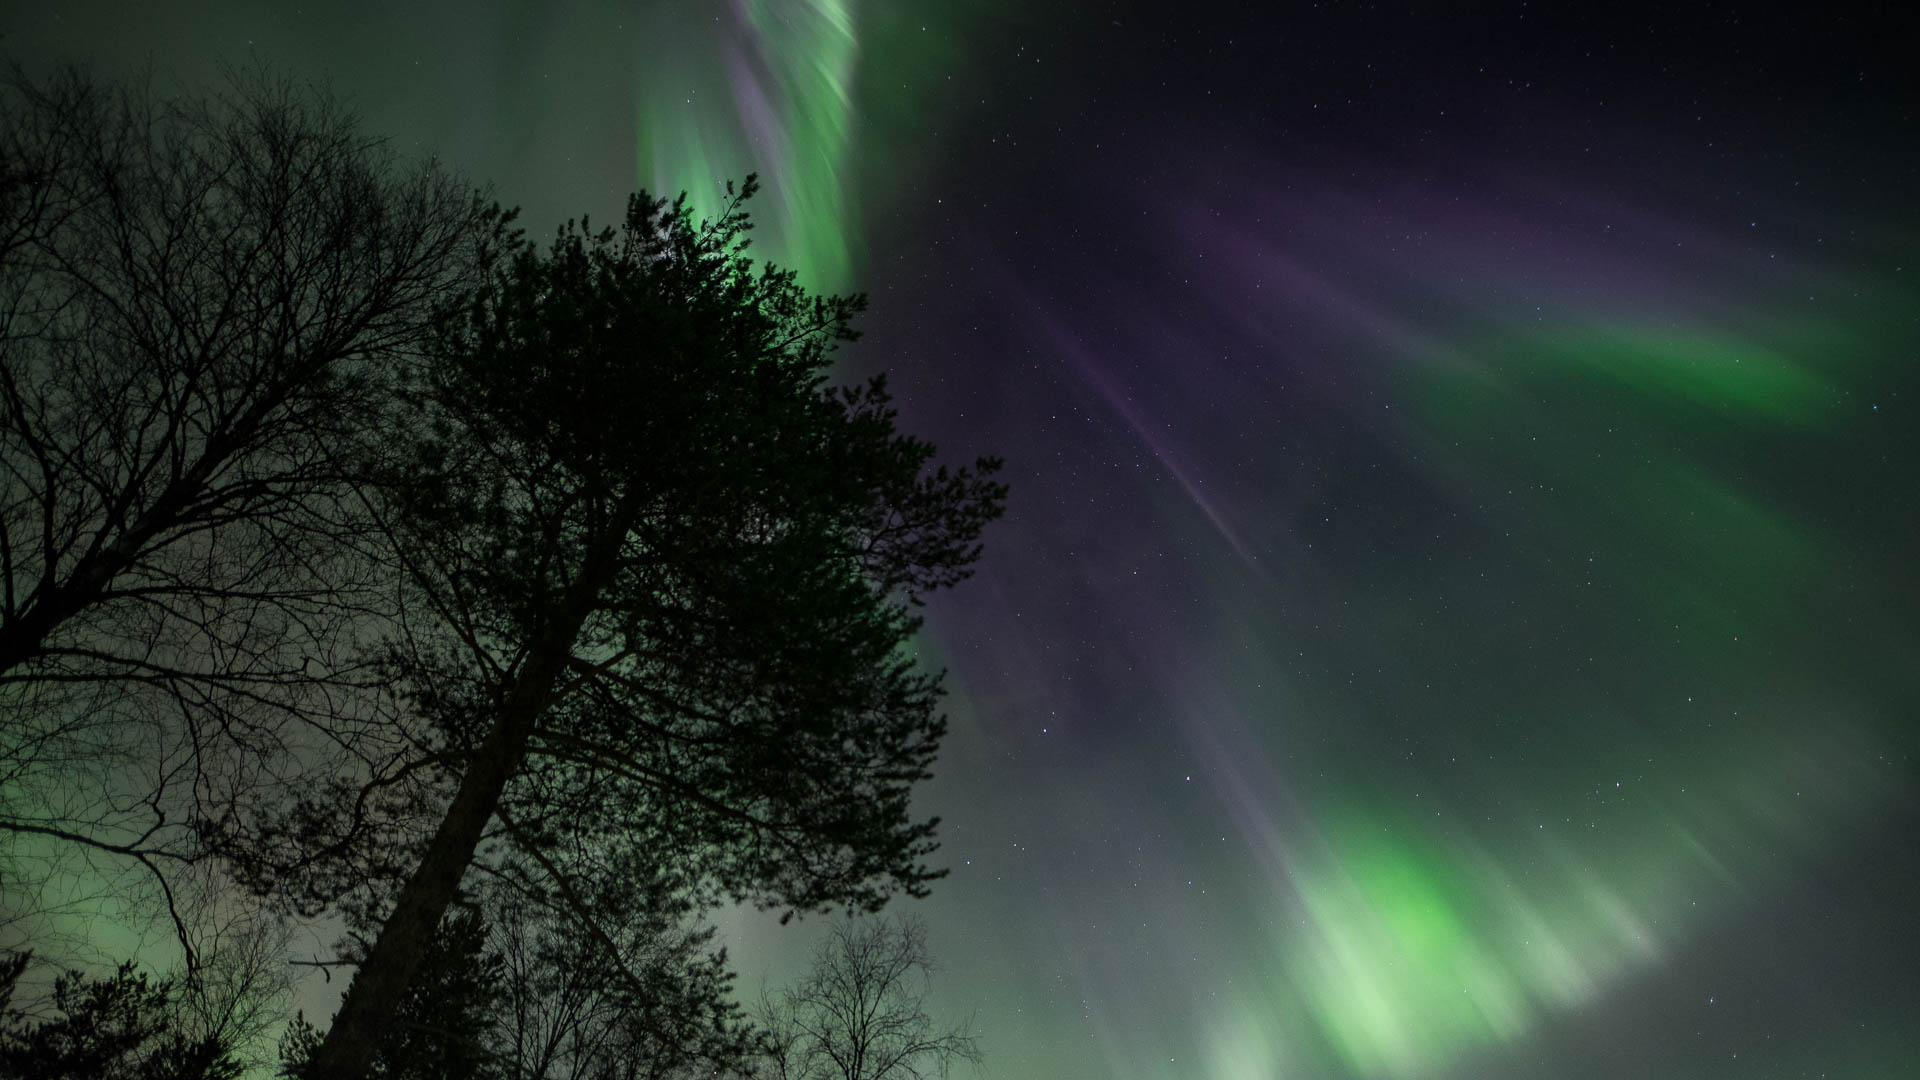 Reindeer Safari to Search for the Northern Lights – 1 (Michael Mead)